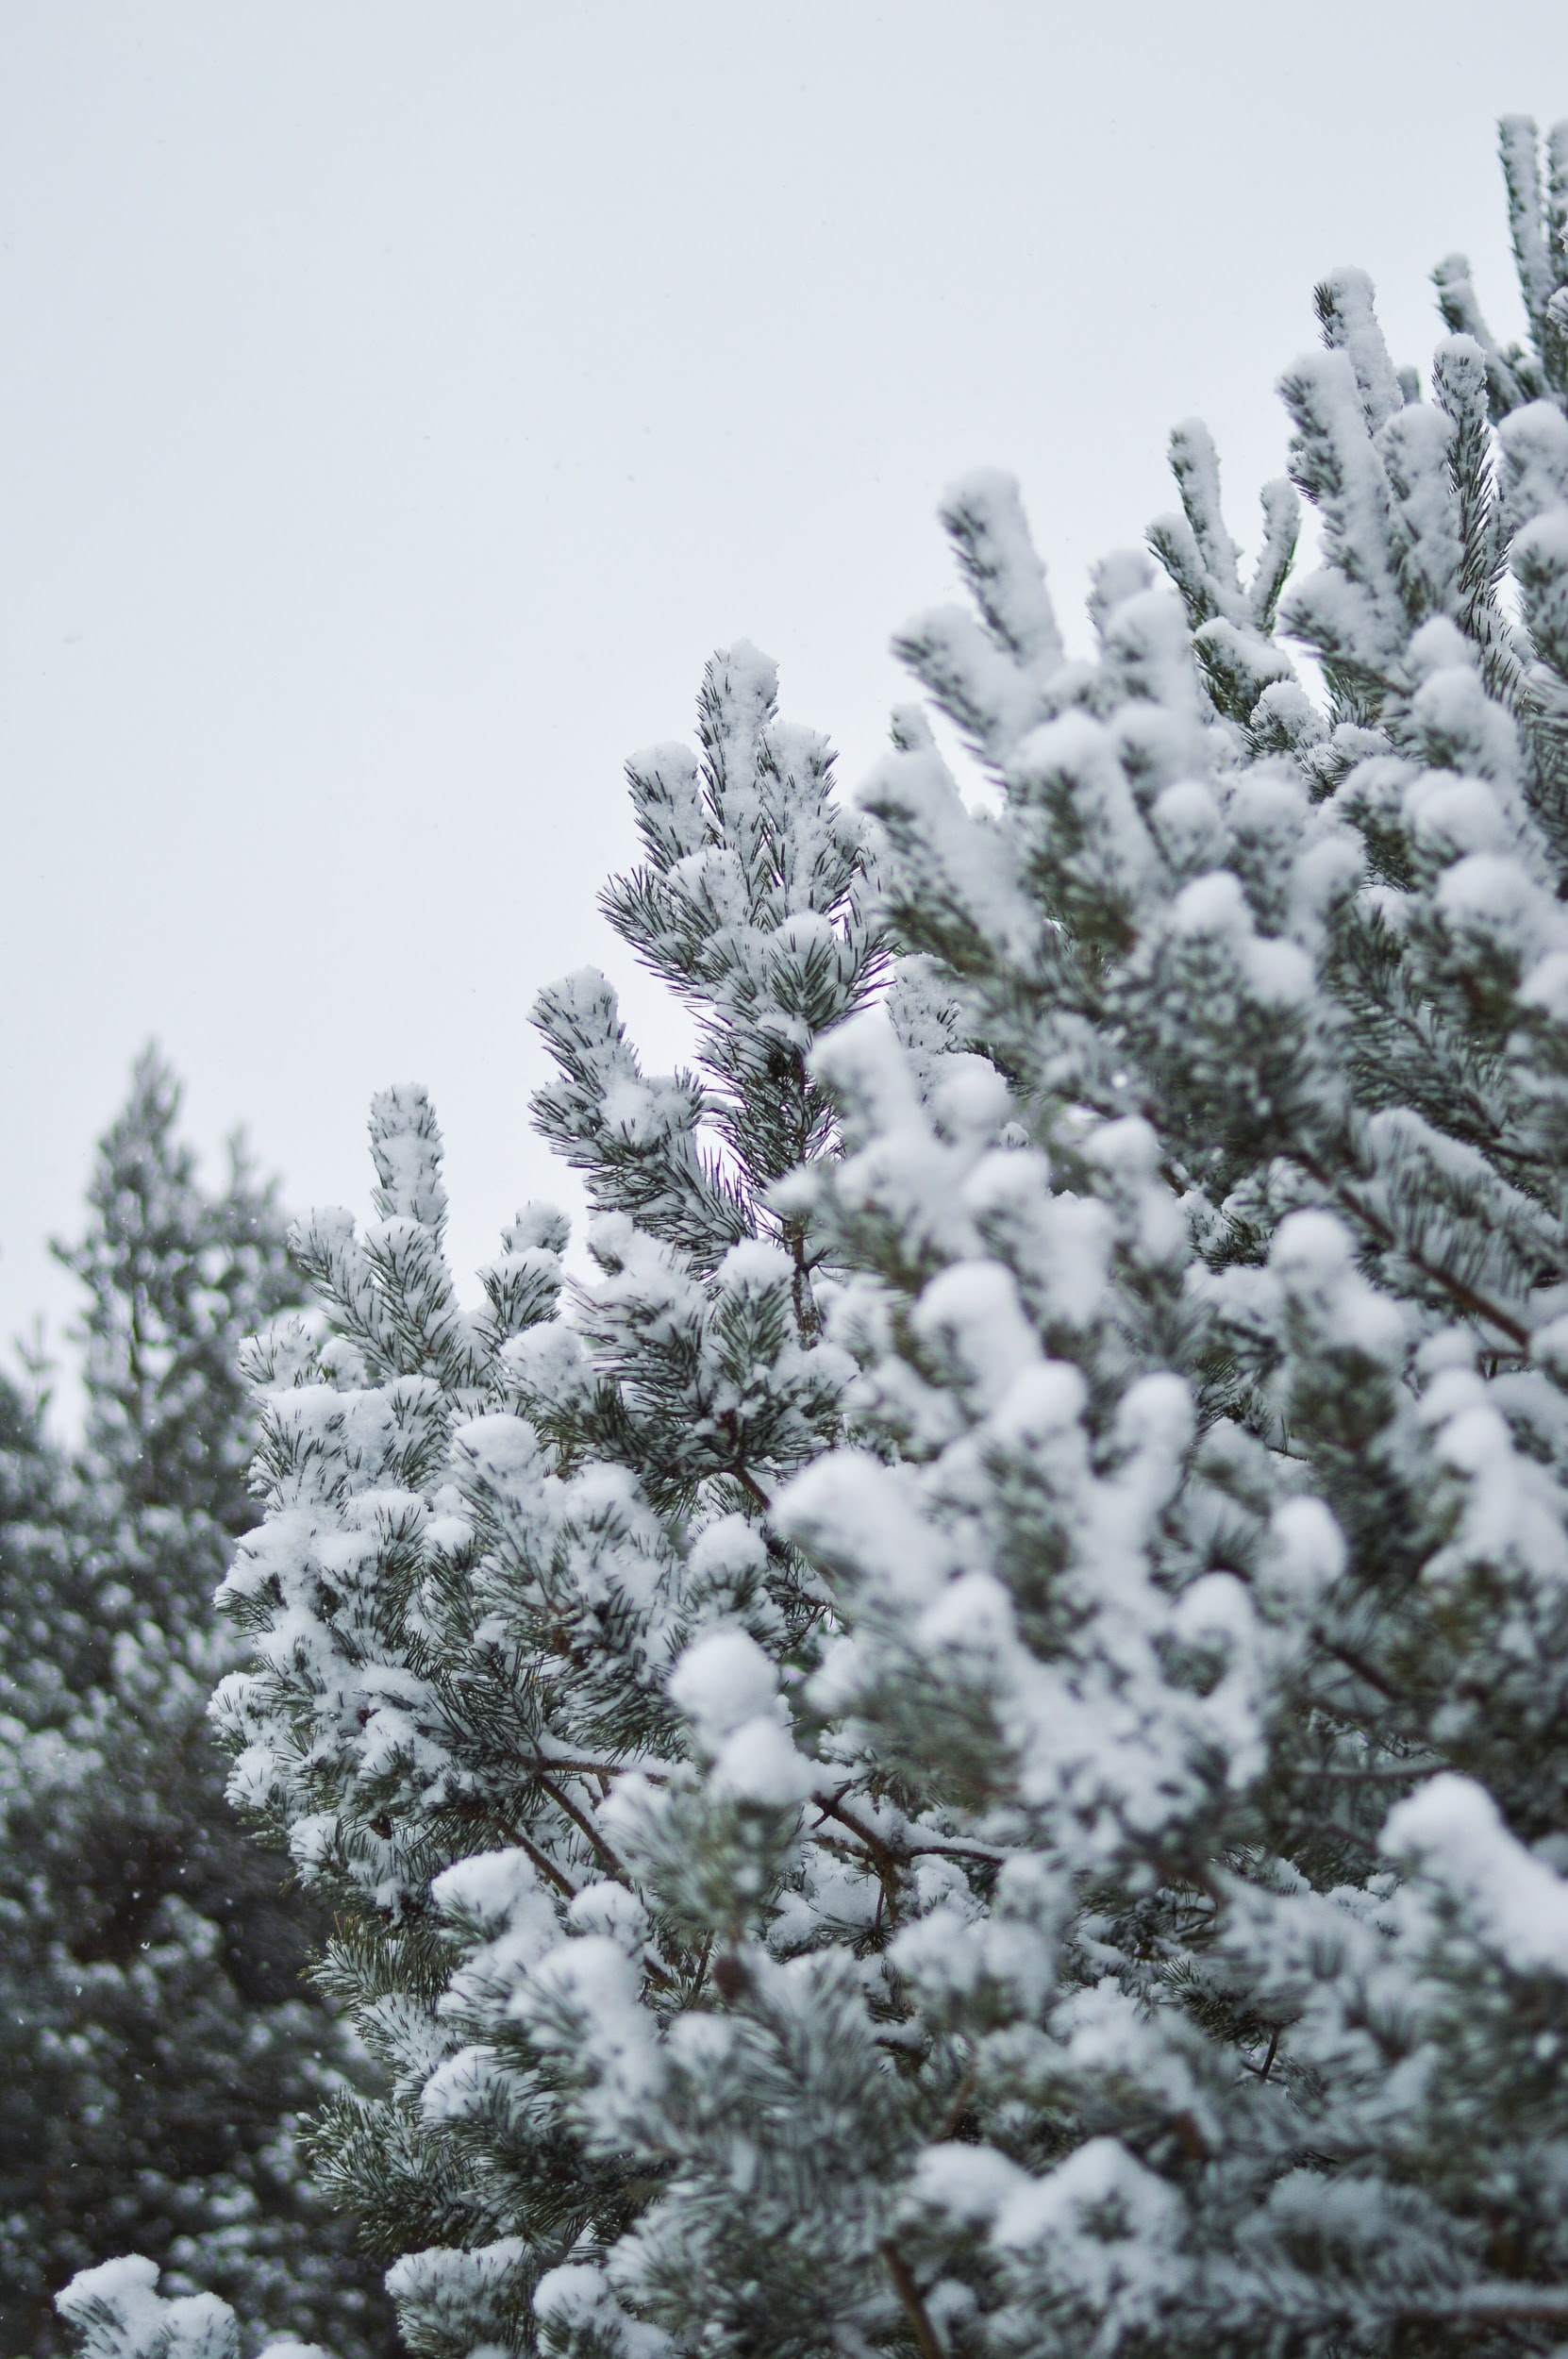 Snow capped evergreen on a cold day